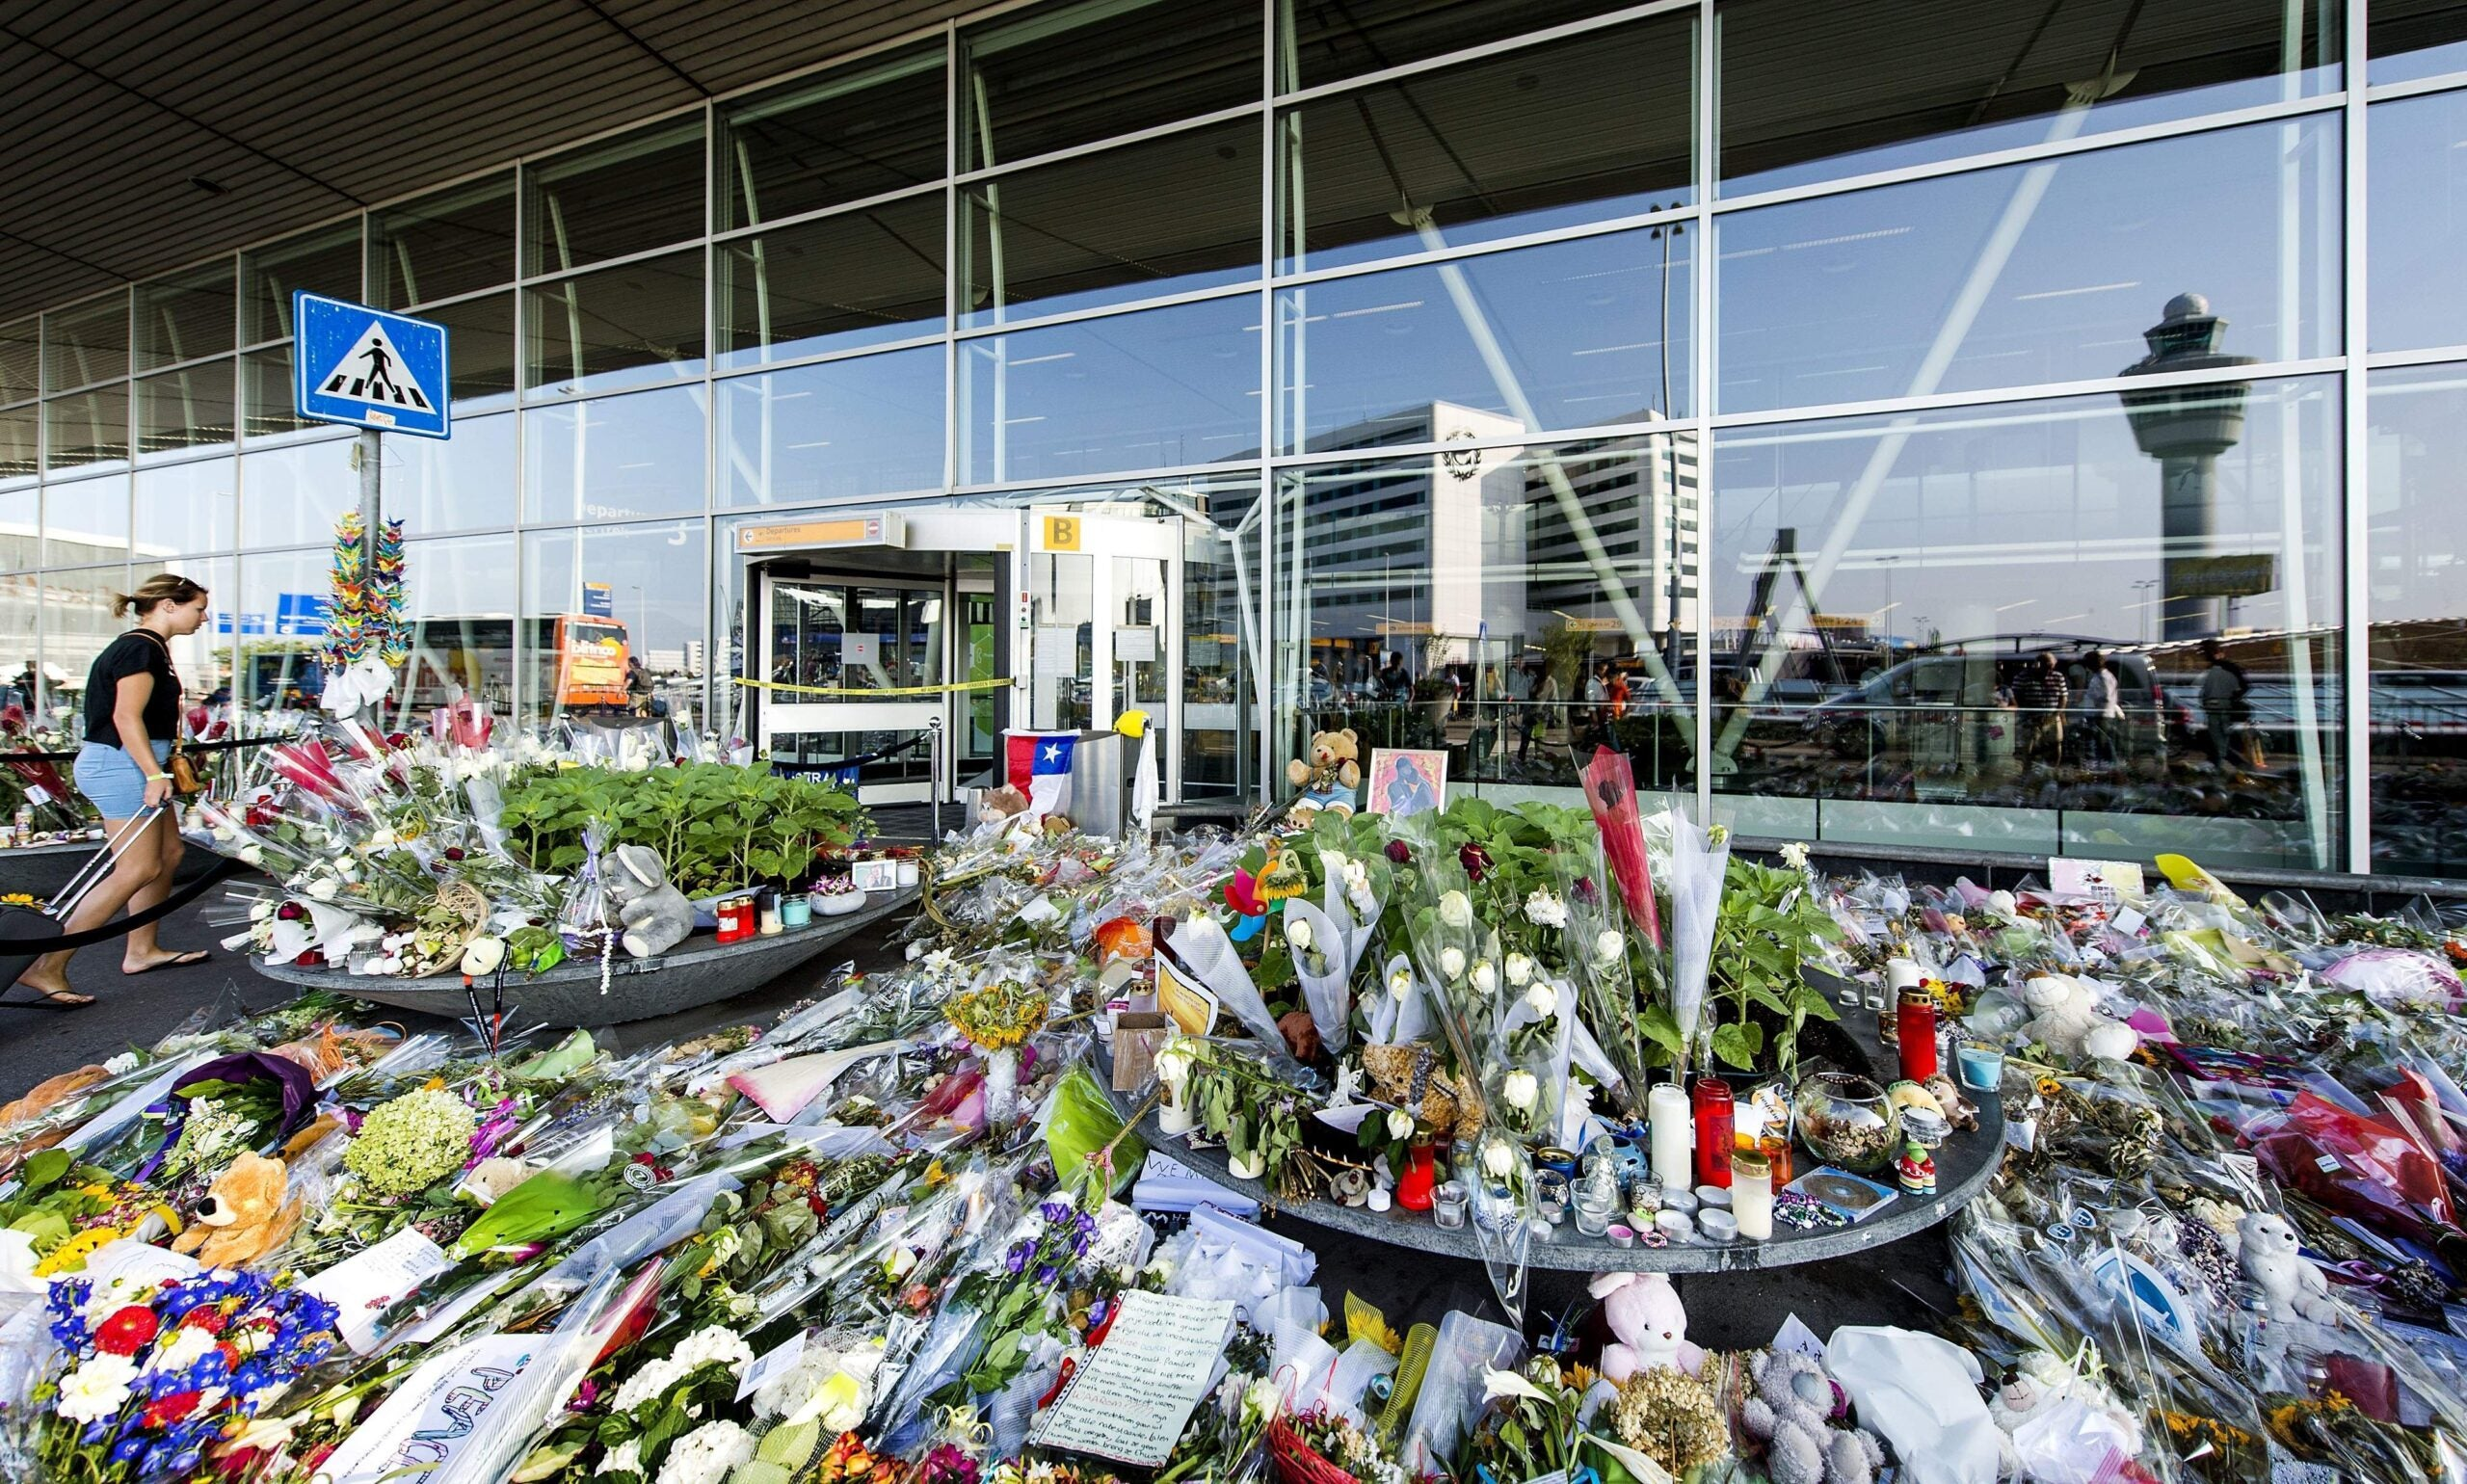 David Patrikarakos: How the MH17 disaster turned a conflict global